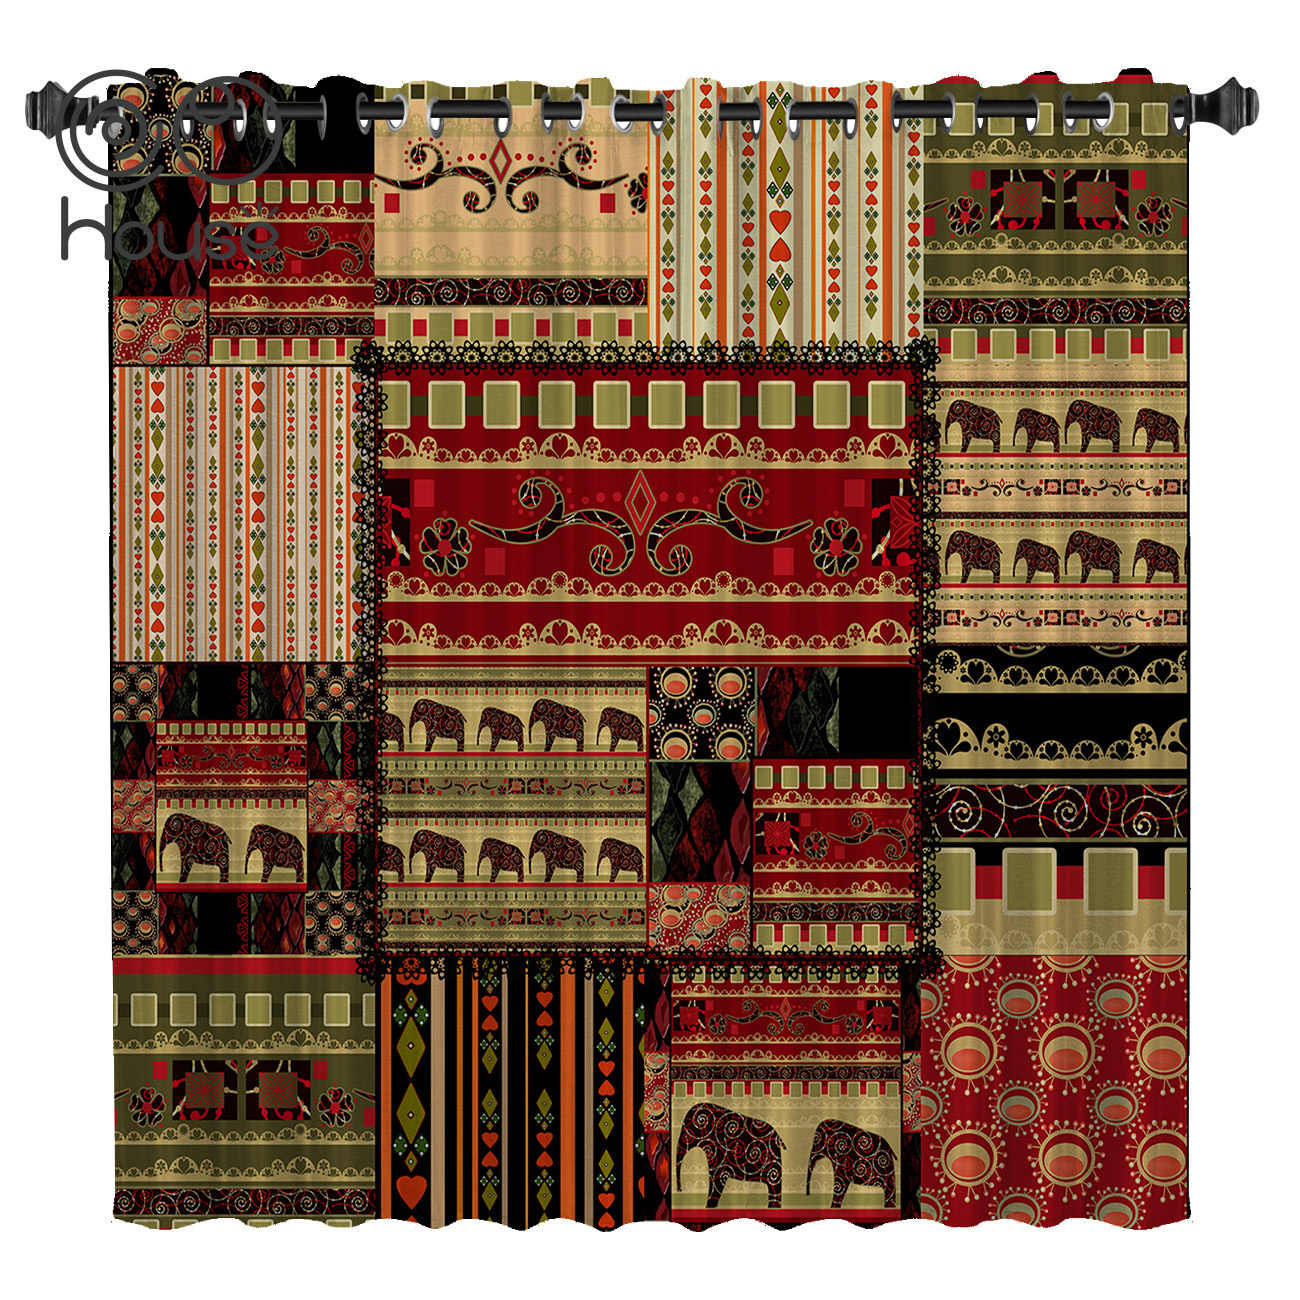 COCOHouse Africa Indian Elephant Room Curtains Large Window Blackout Curtains Kitchen Outdoor Print Window Treatment Ideas